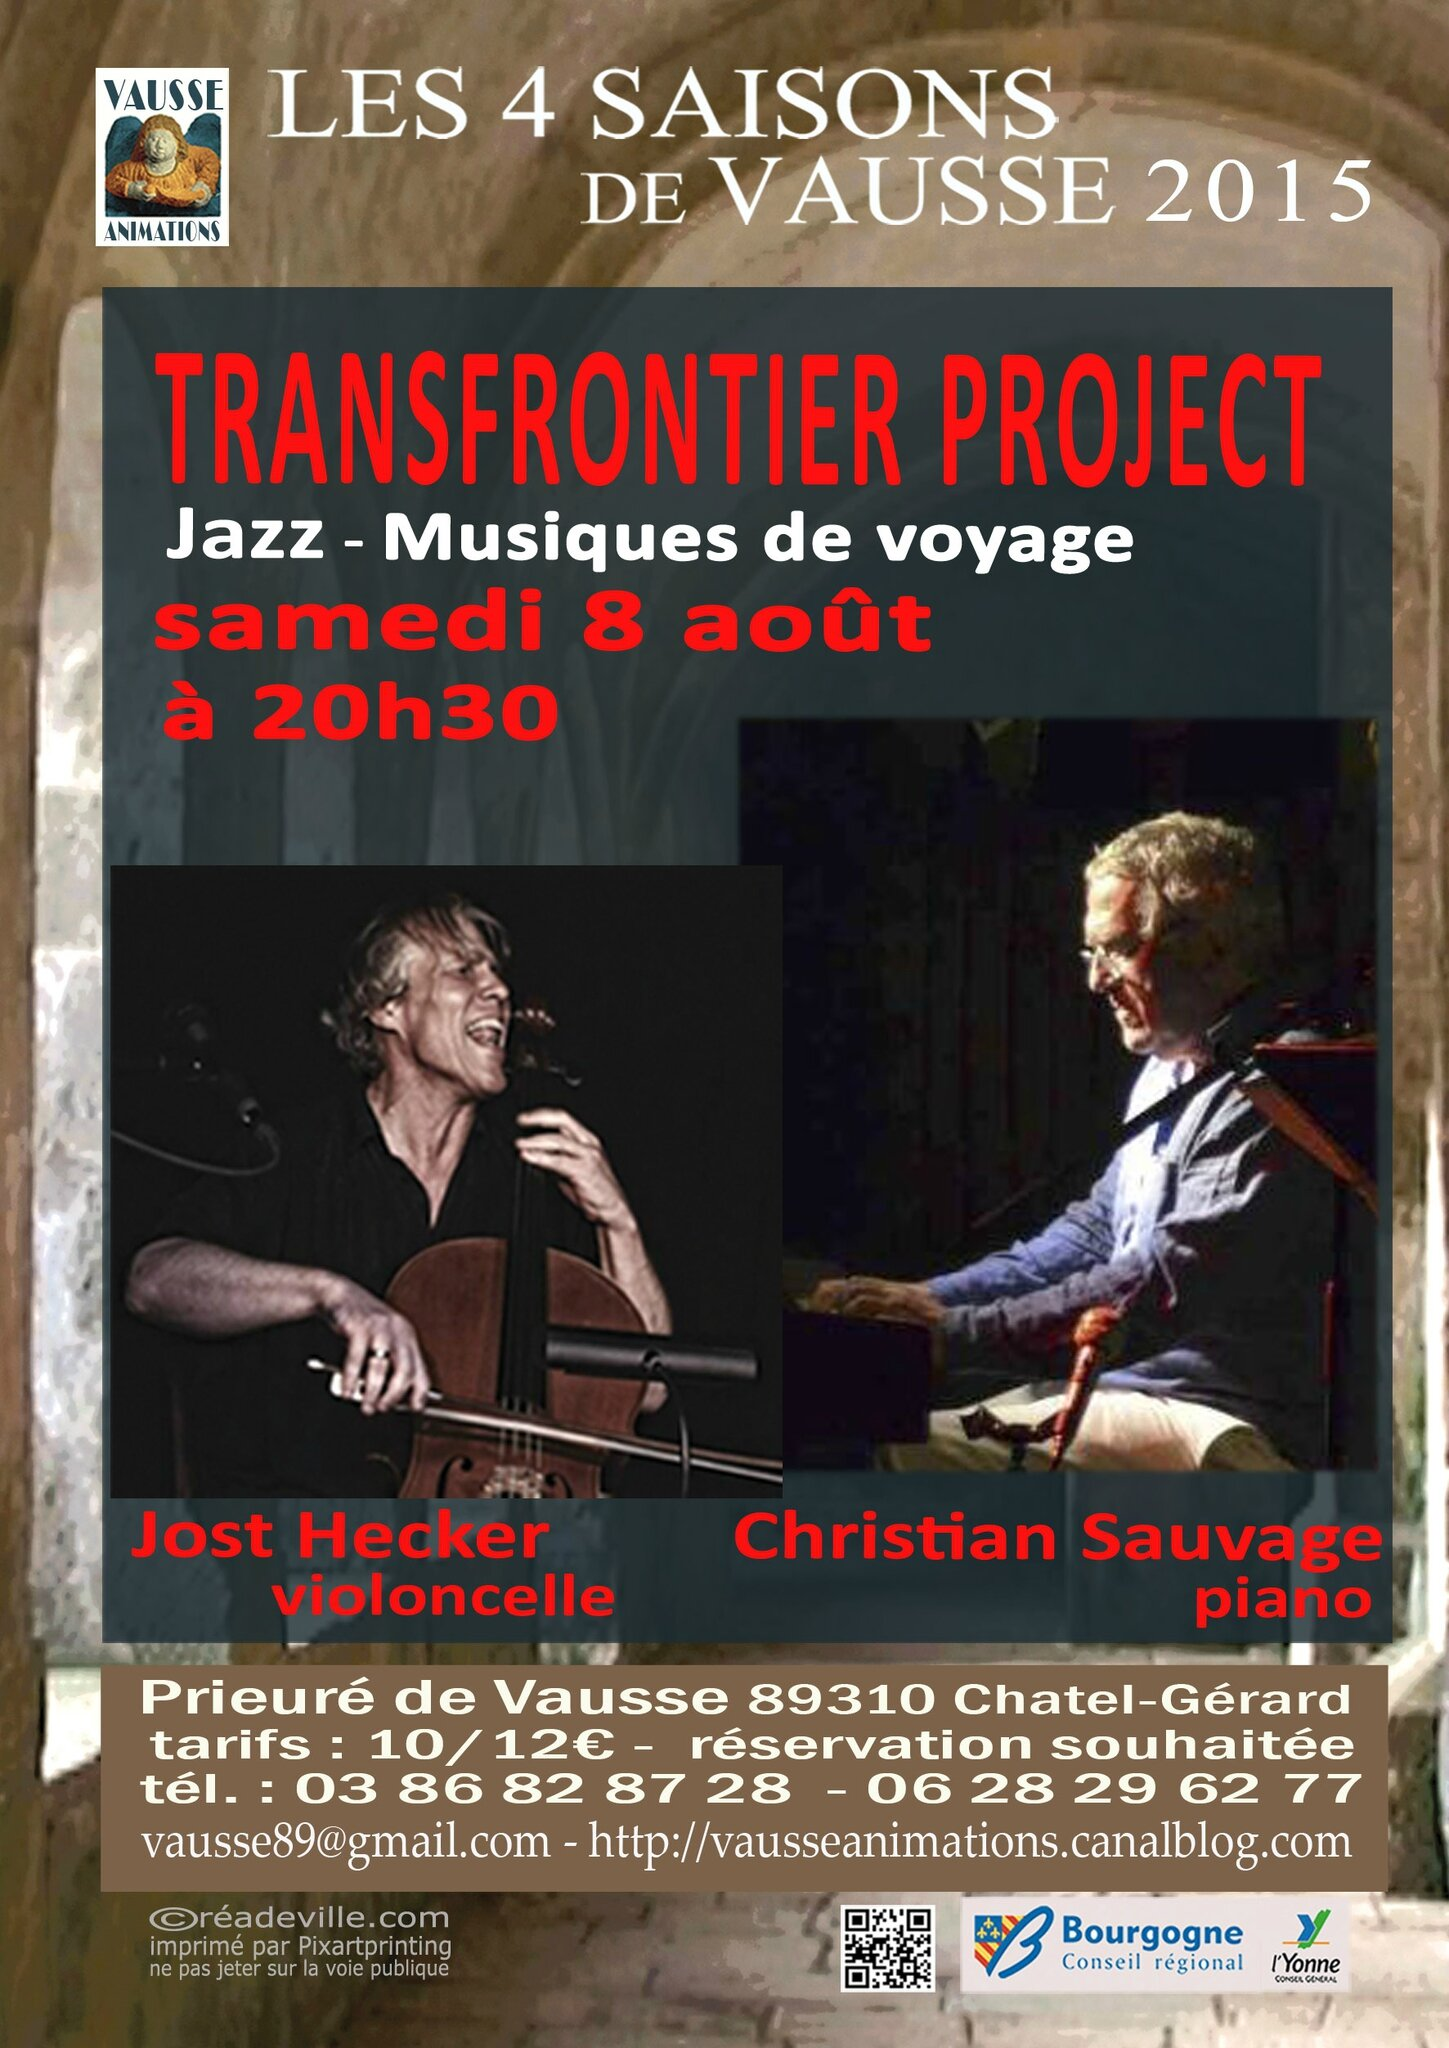 flyer 2015 transfontiers 8 aout copie